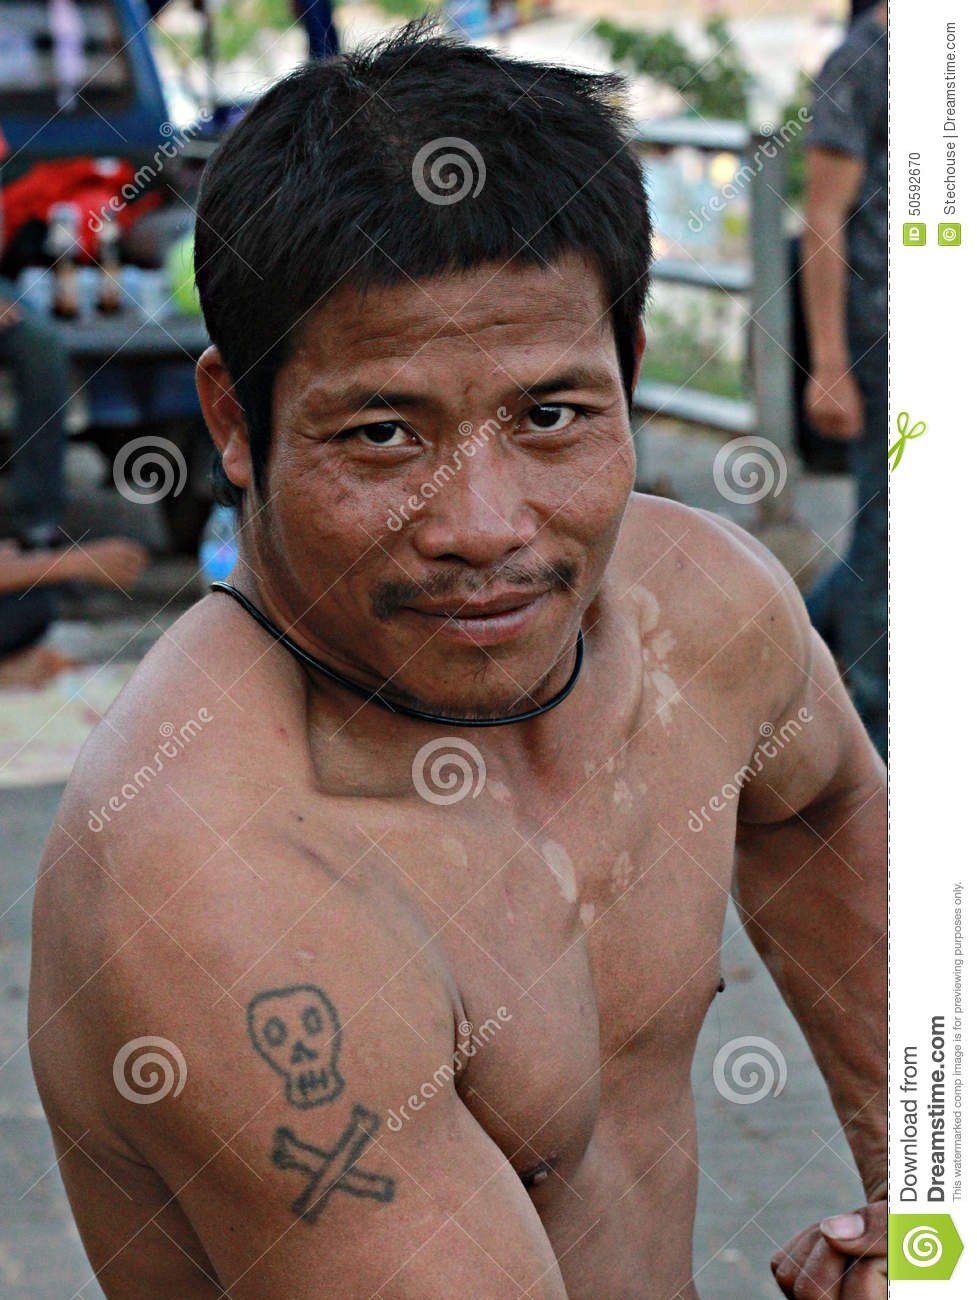 Man With Tattoo Poses On The Mekong, Chiang Khong, Thailand.